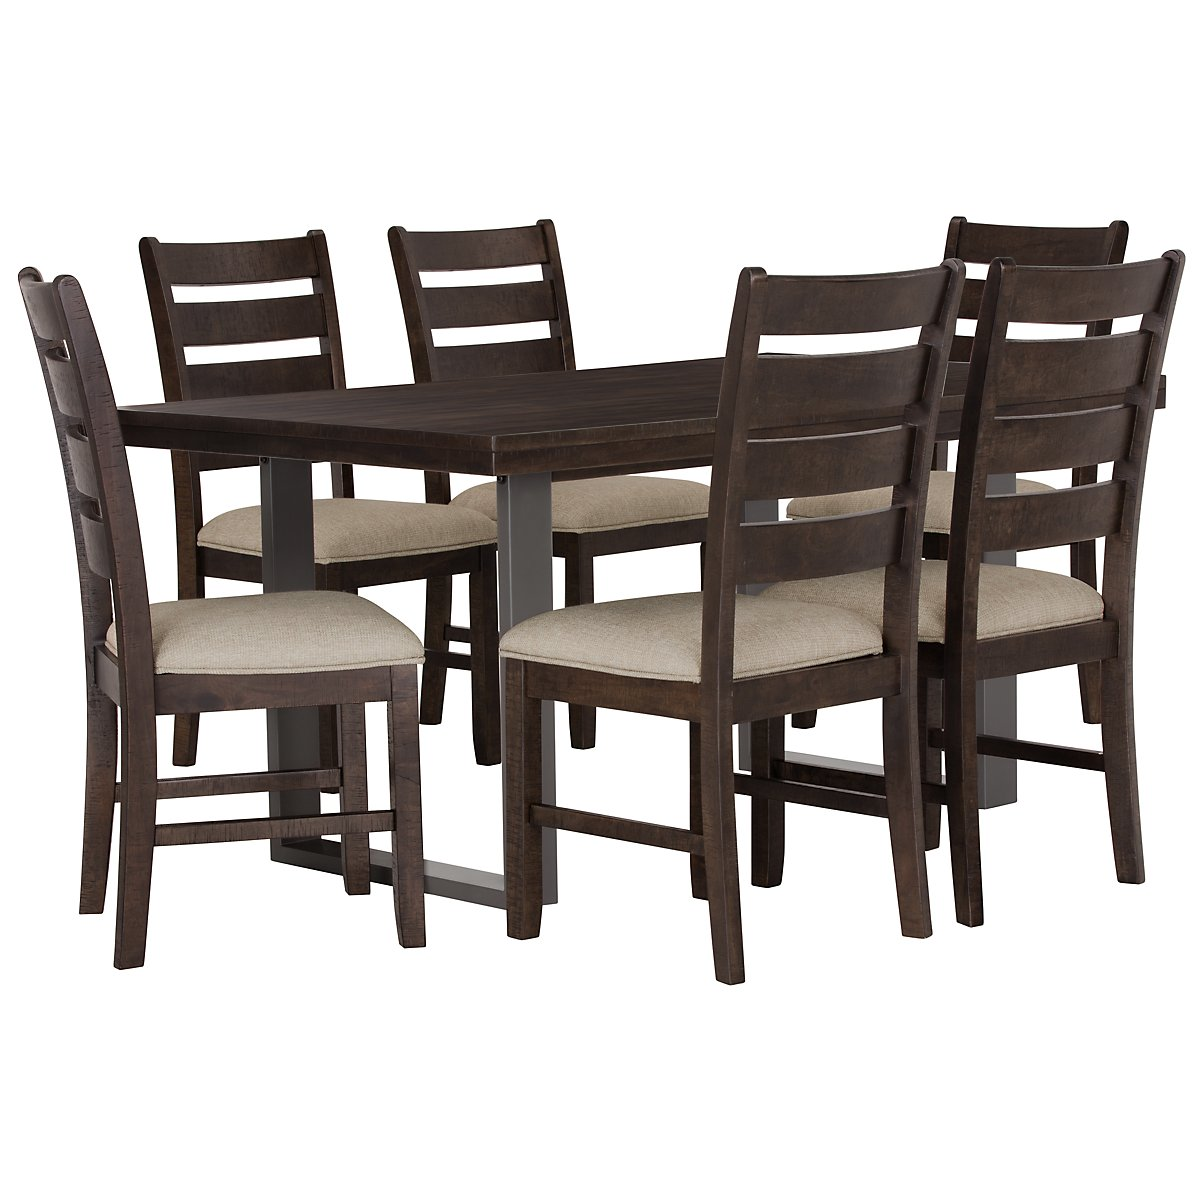 City Furniture Dining Room: City Furniture: Sawyer Dark Tone Rectangular Dining Room